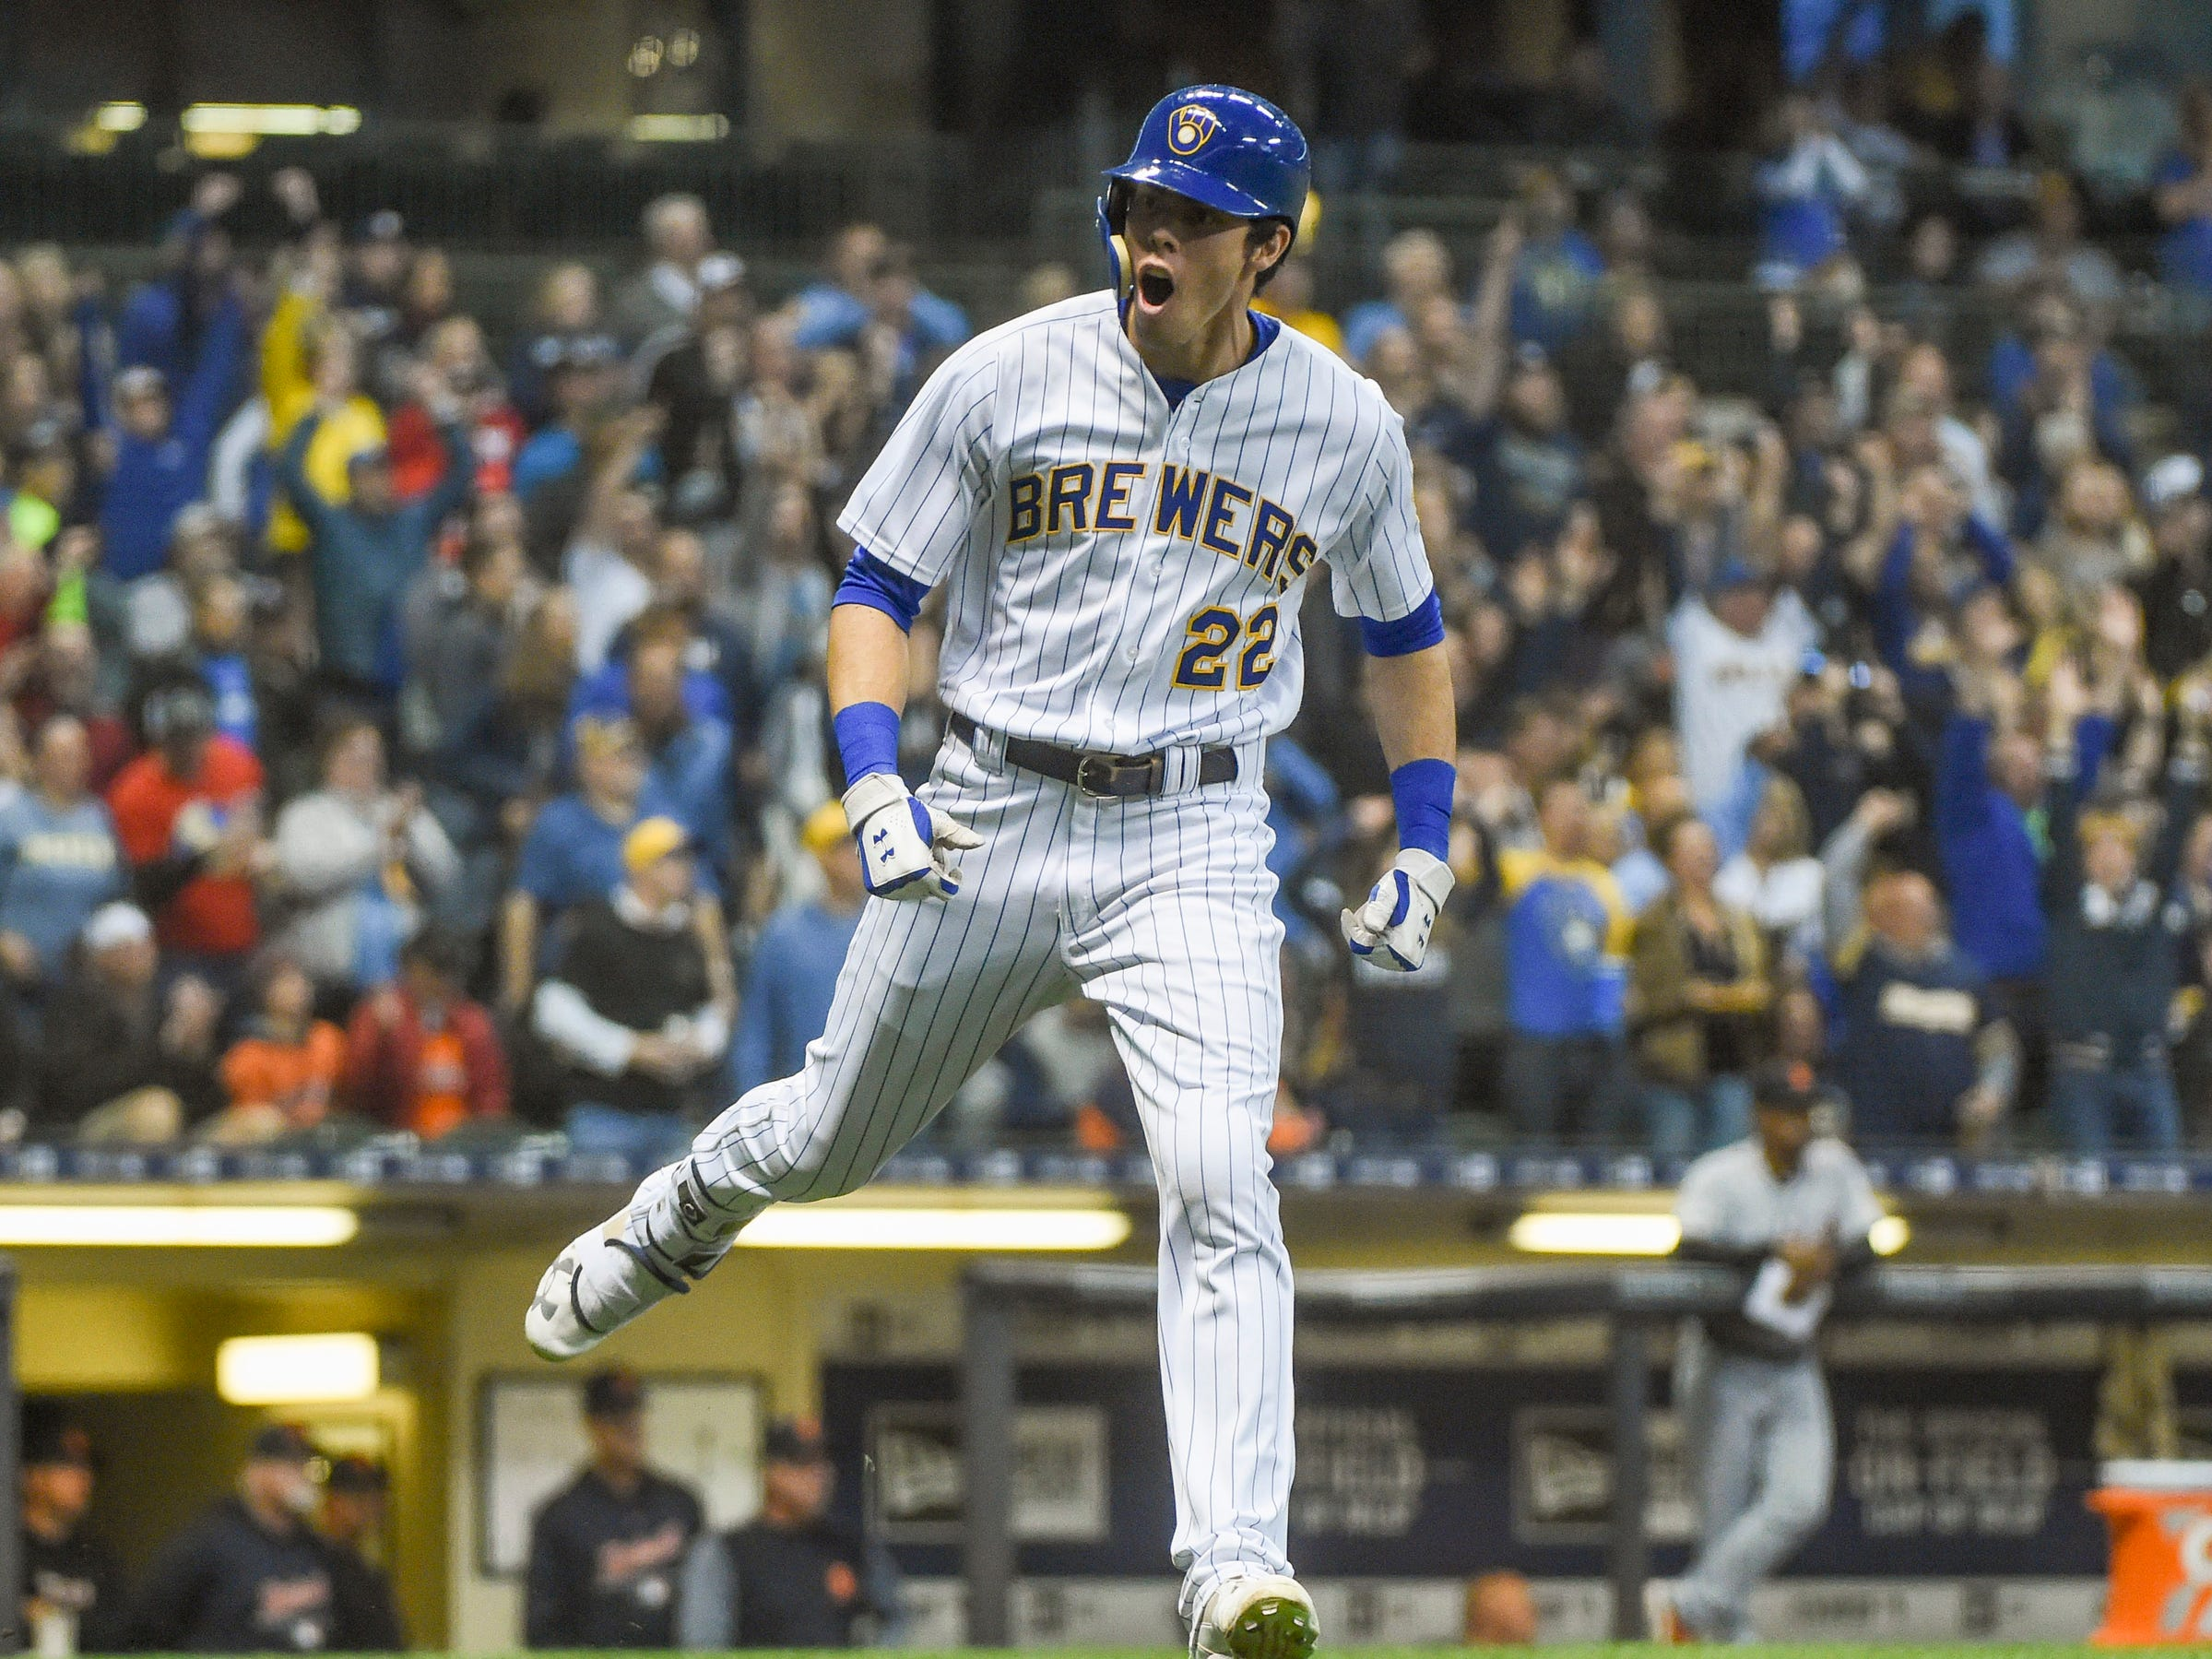 Milwaukee Brewers right fielder Christian Yelich reacts after hitting a solo home run in the seventh inning against the Detroit Tigers at Miller Park  on Sept. 29, 2018 in Milwaukee.